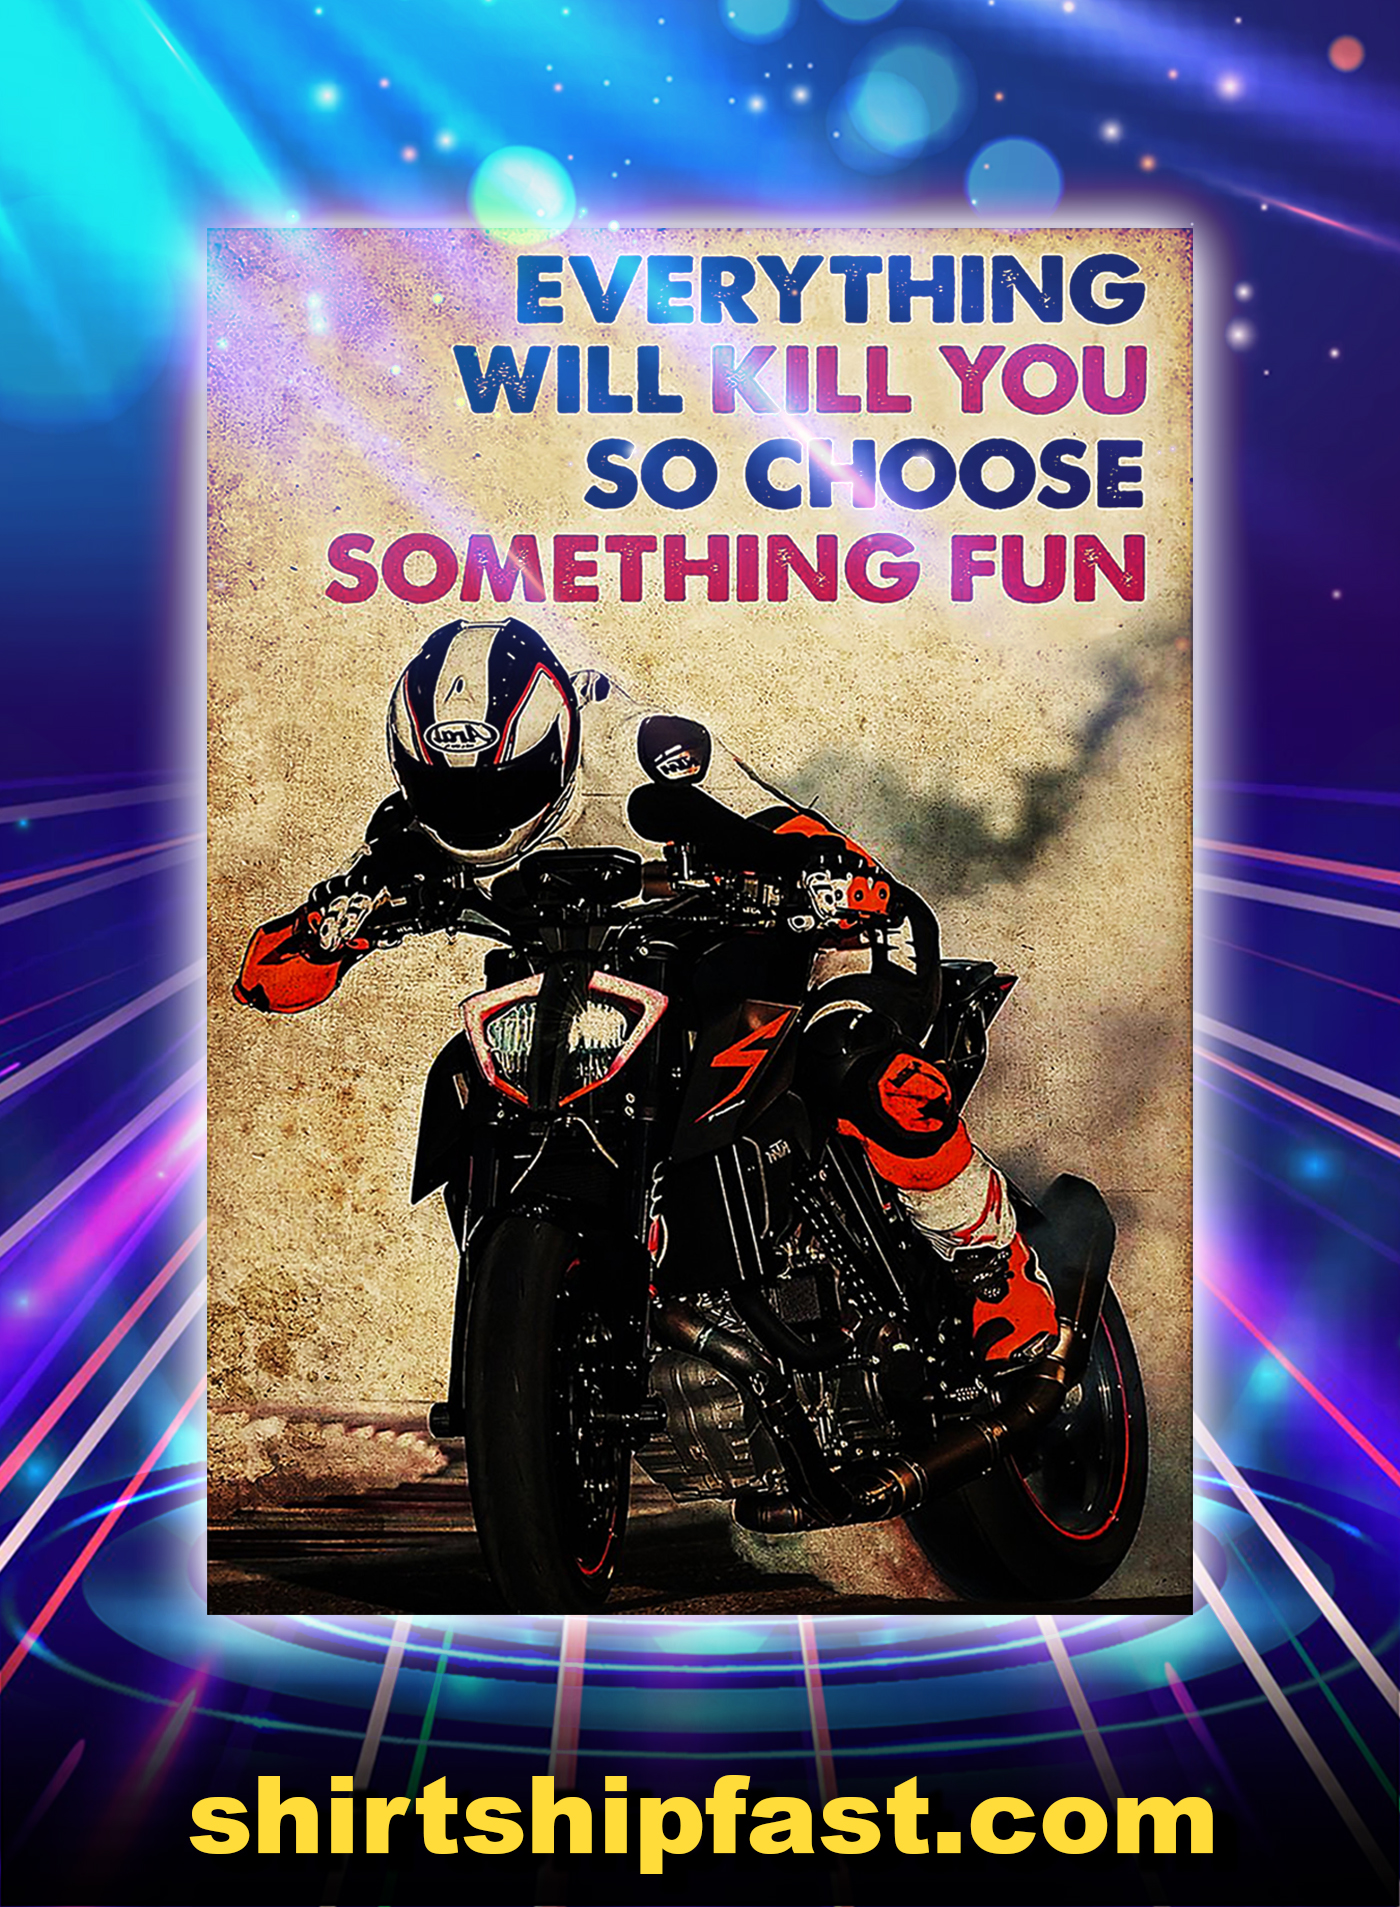 Motor racer everything will kill you so choose something fun poster - A1